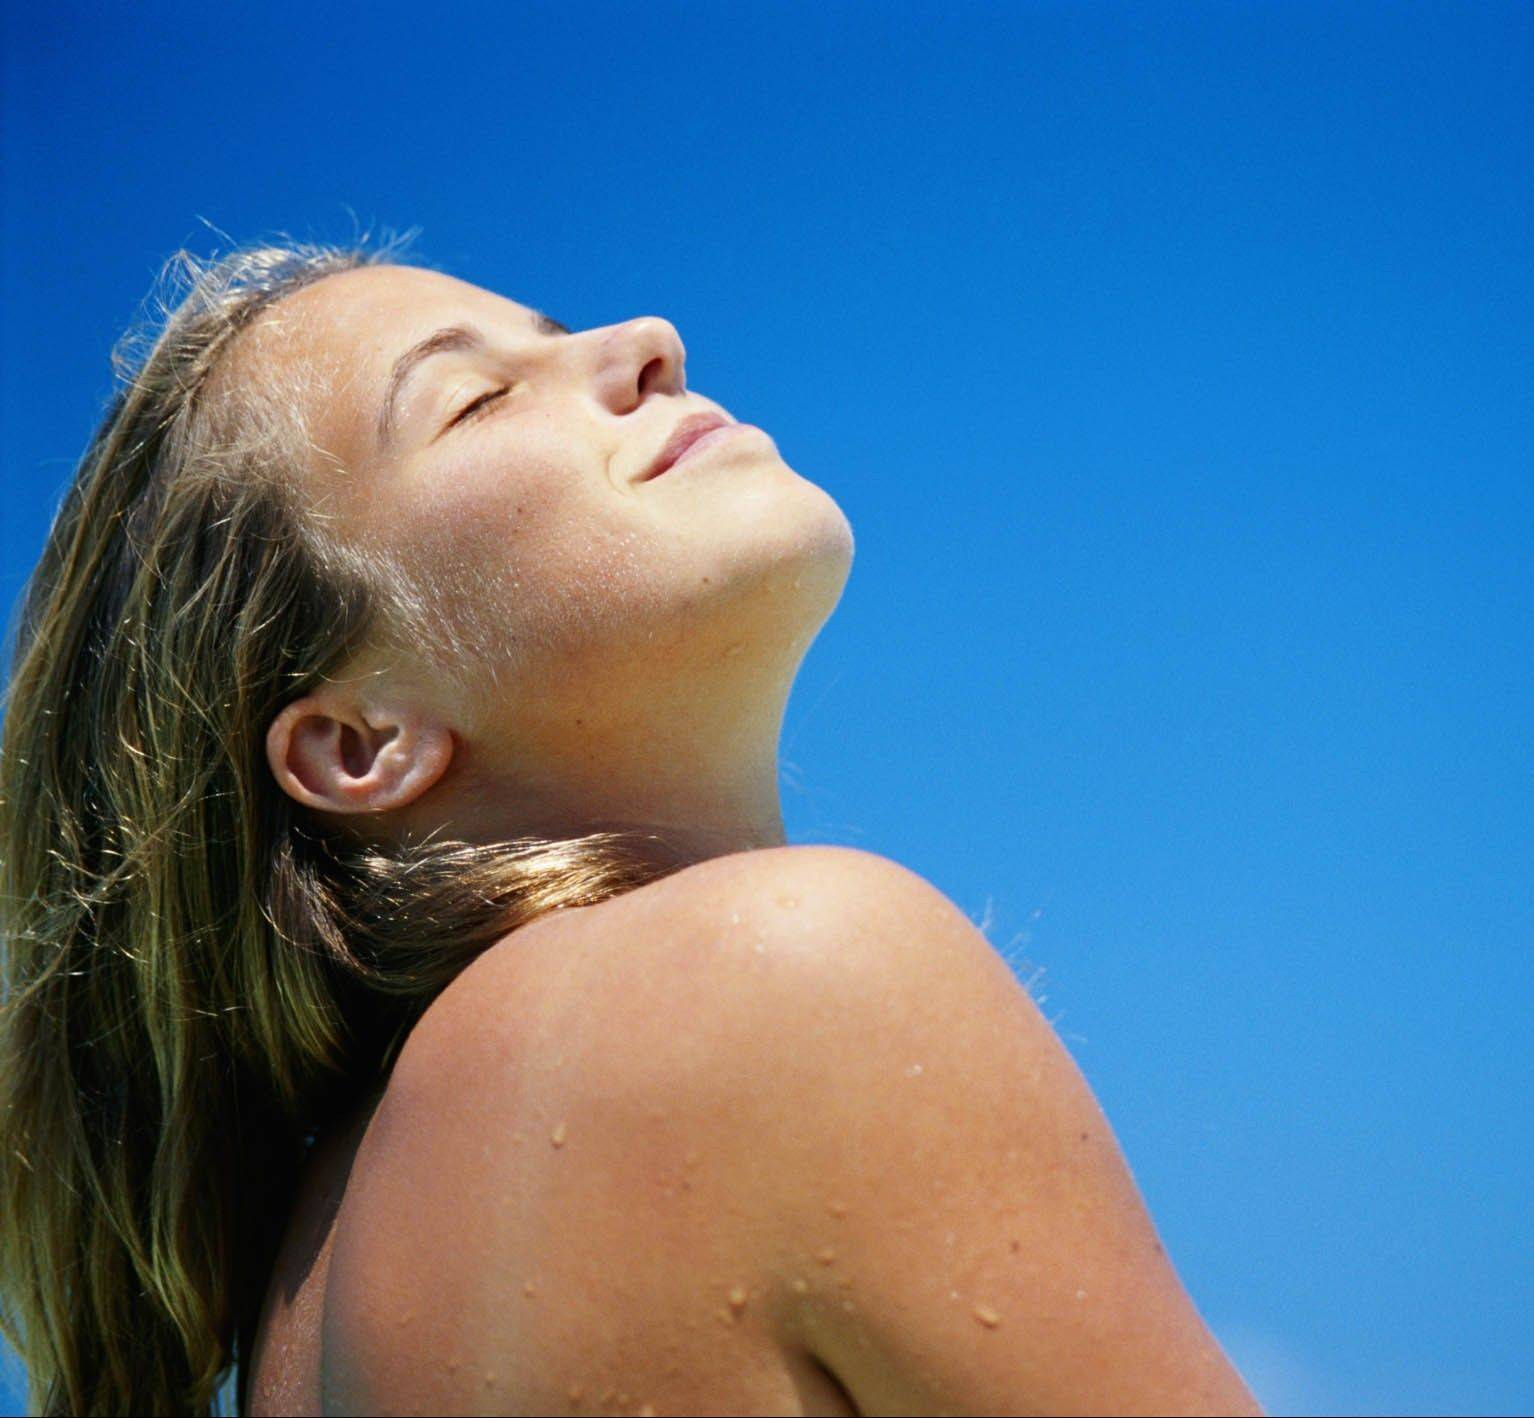 Sunscreen was thought to block vitamin D levels, but most people don't use enough it to have an impact.